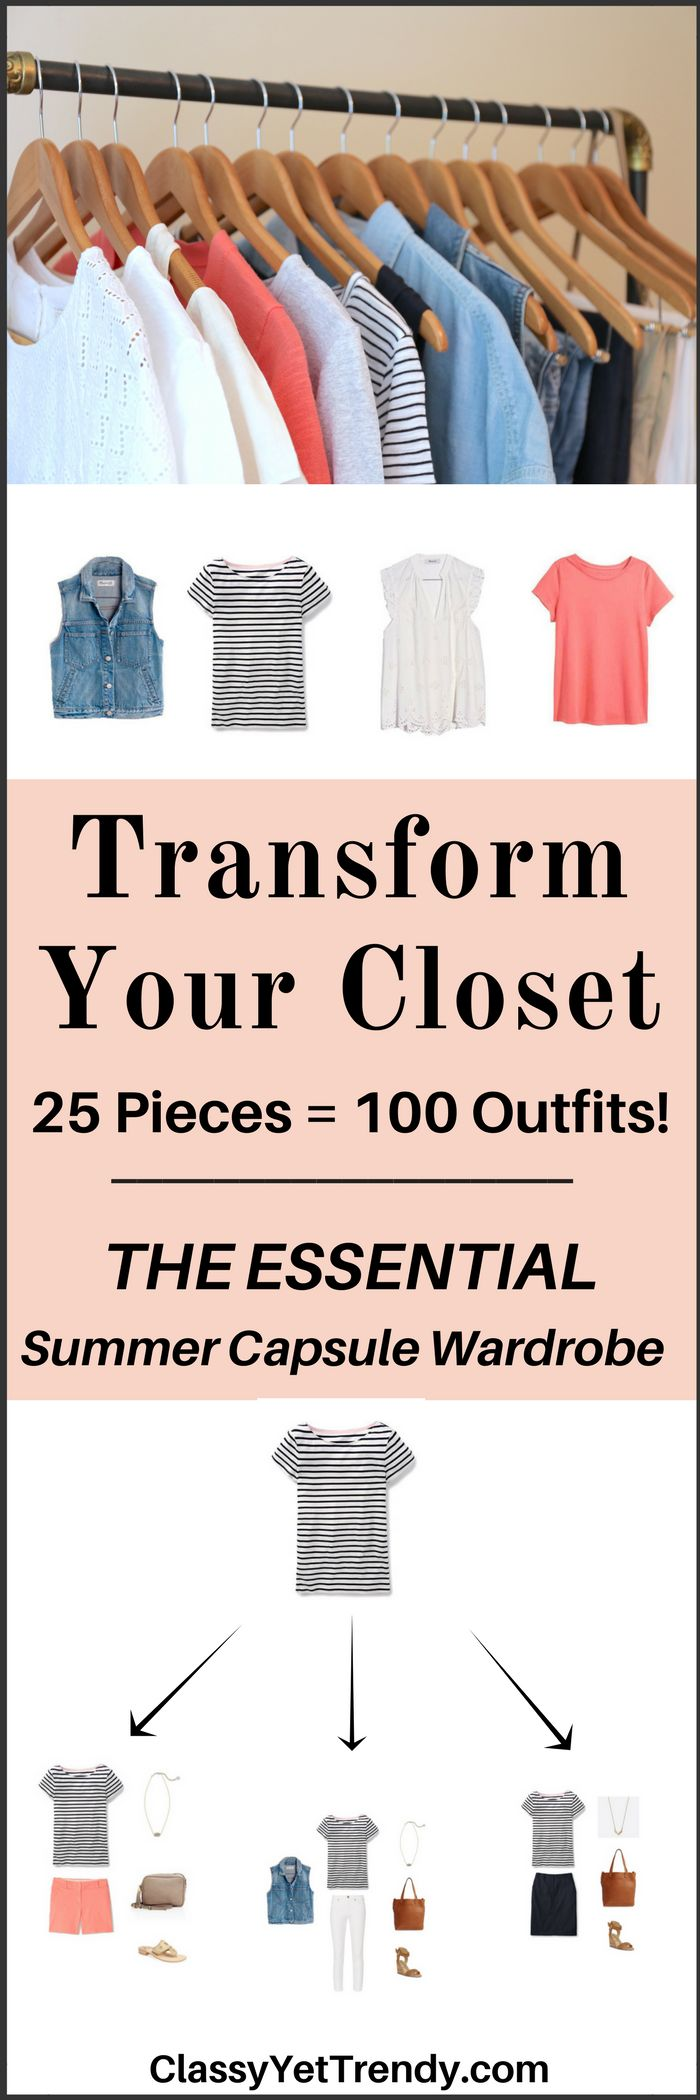 Create A Summer Capsule Wardrobe On A Budget! This Post Is A Preview Of The